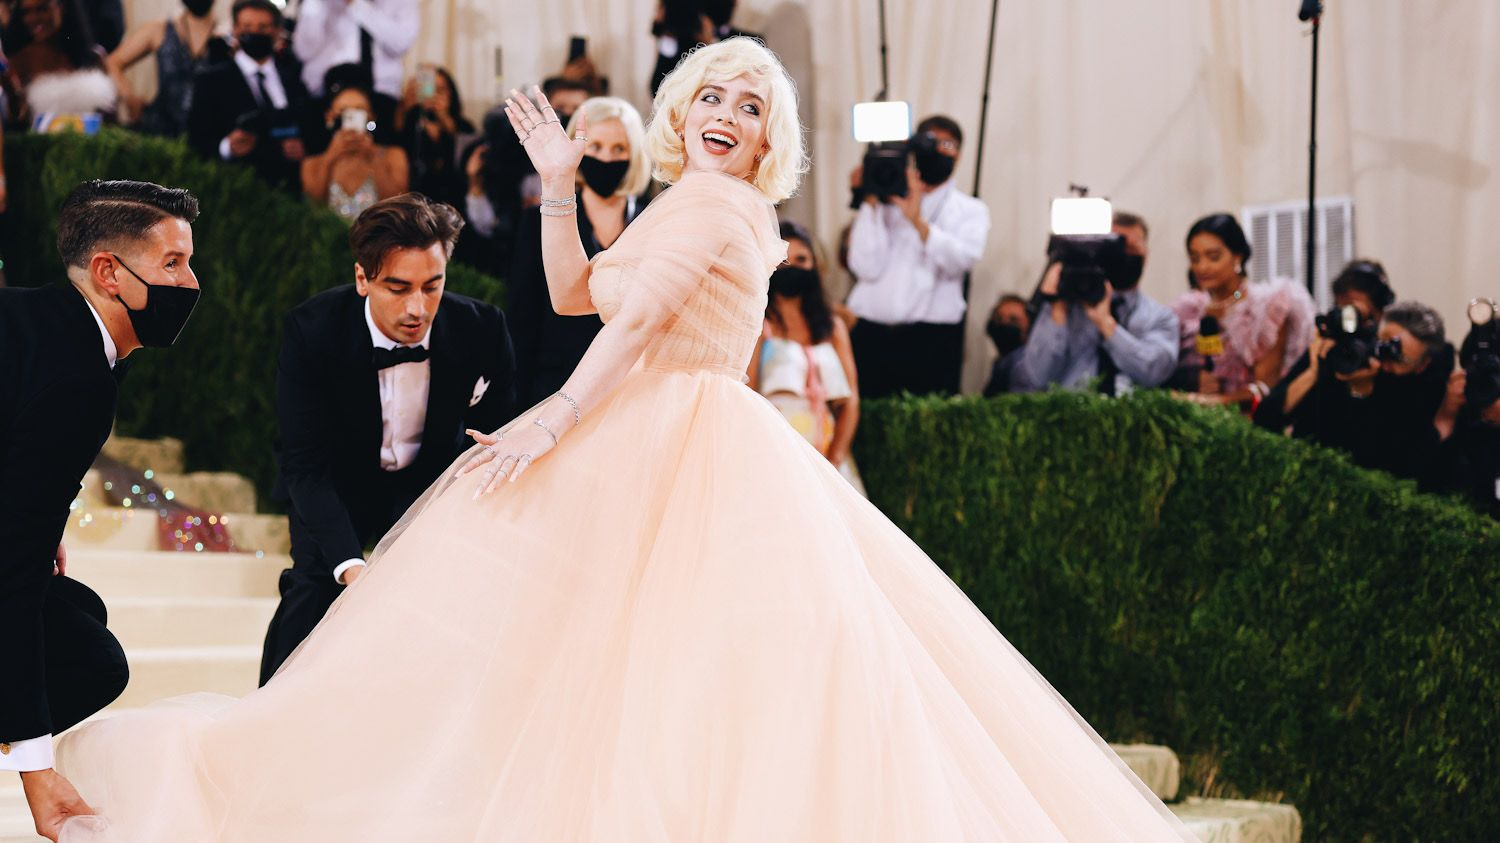 Met Gala 2021 Red Carpet: The Most Sustainable Looks